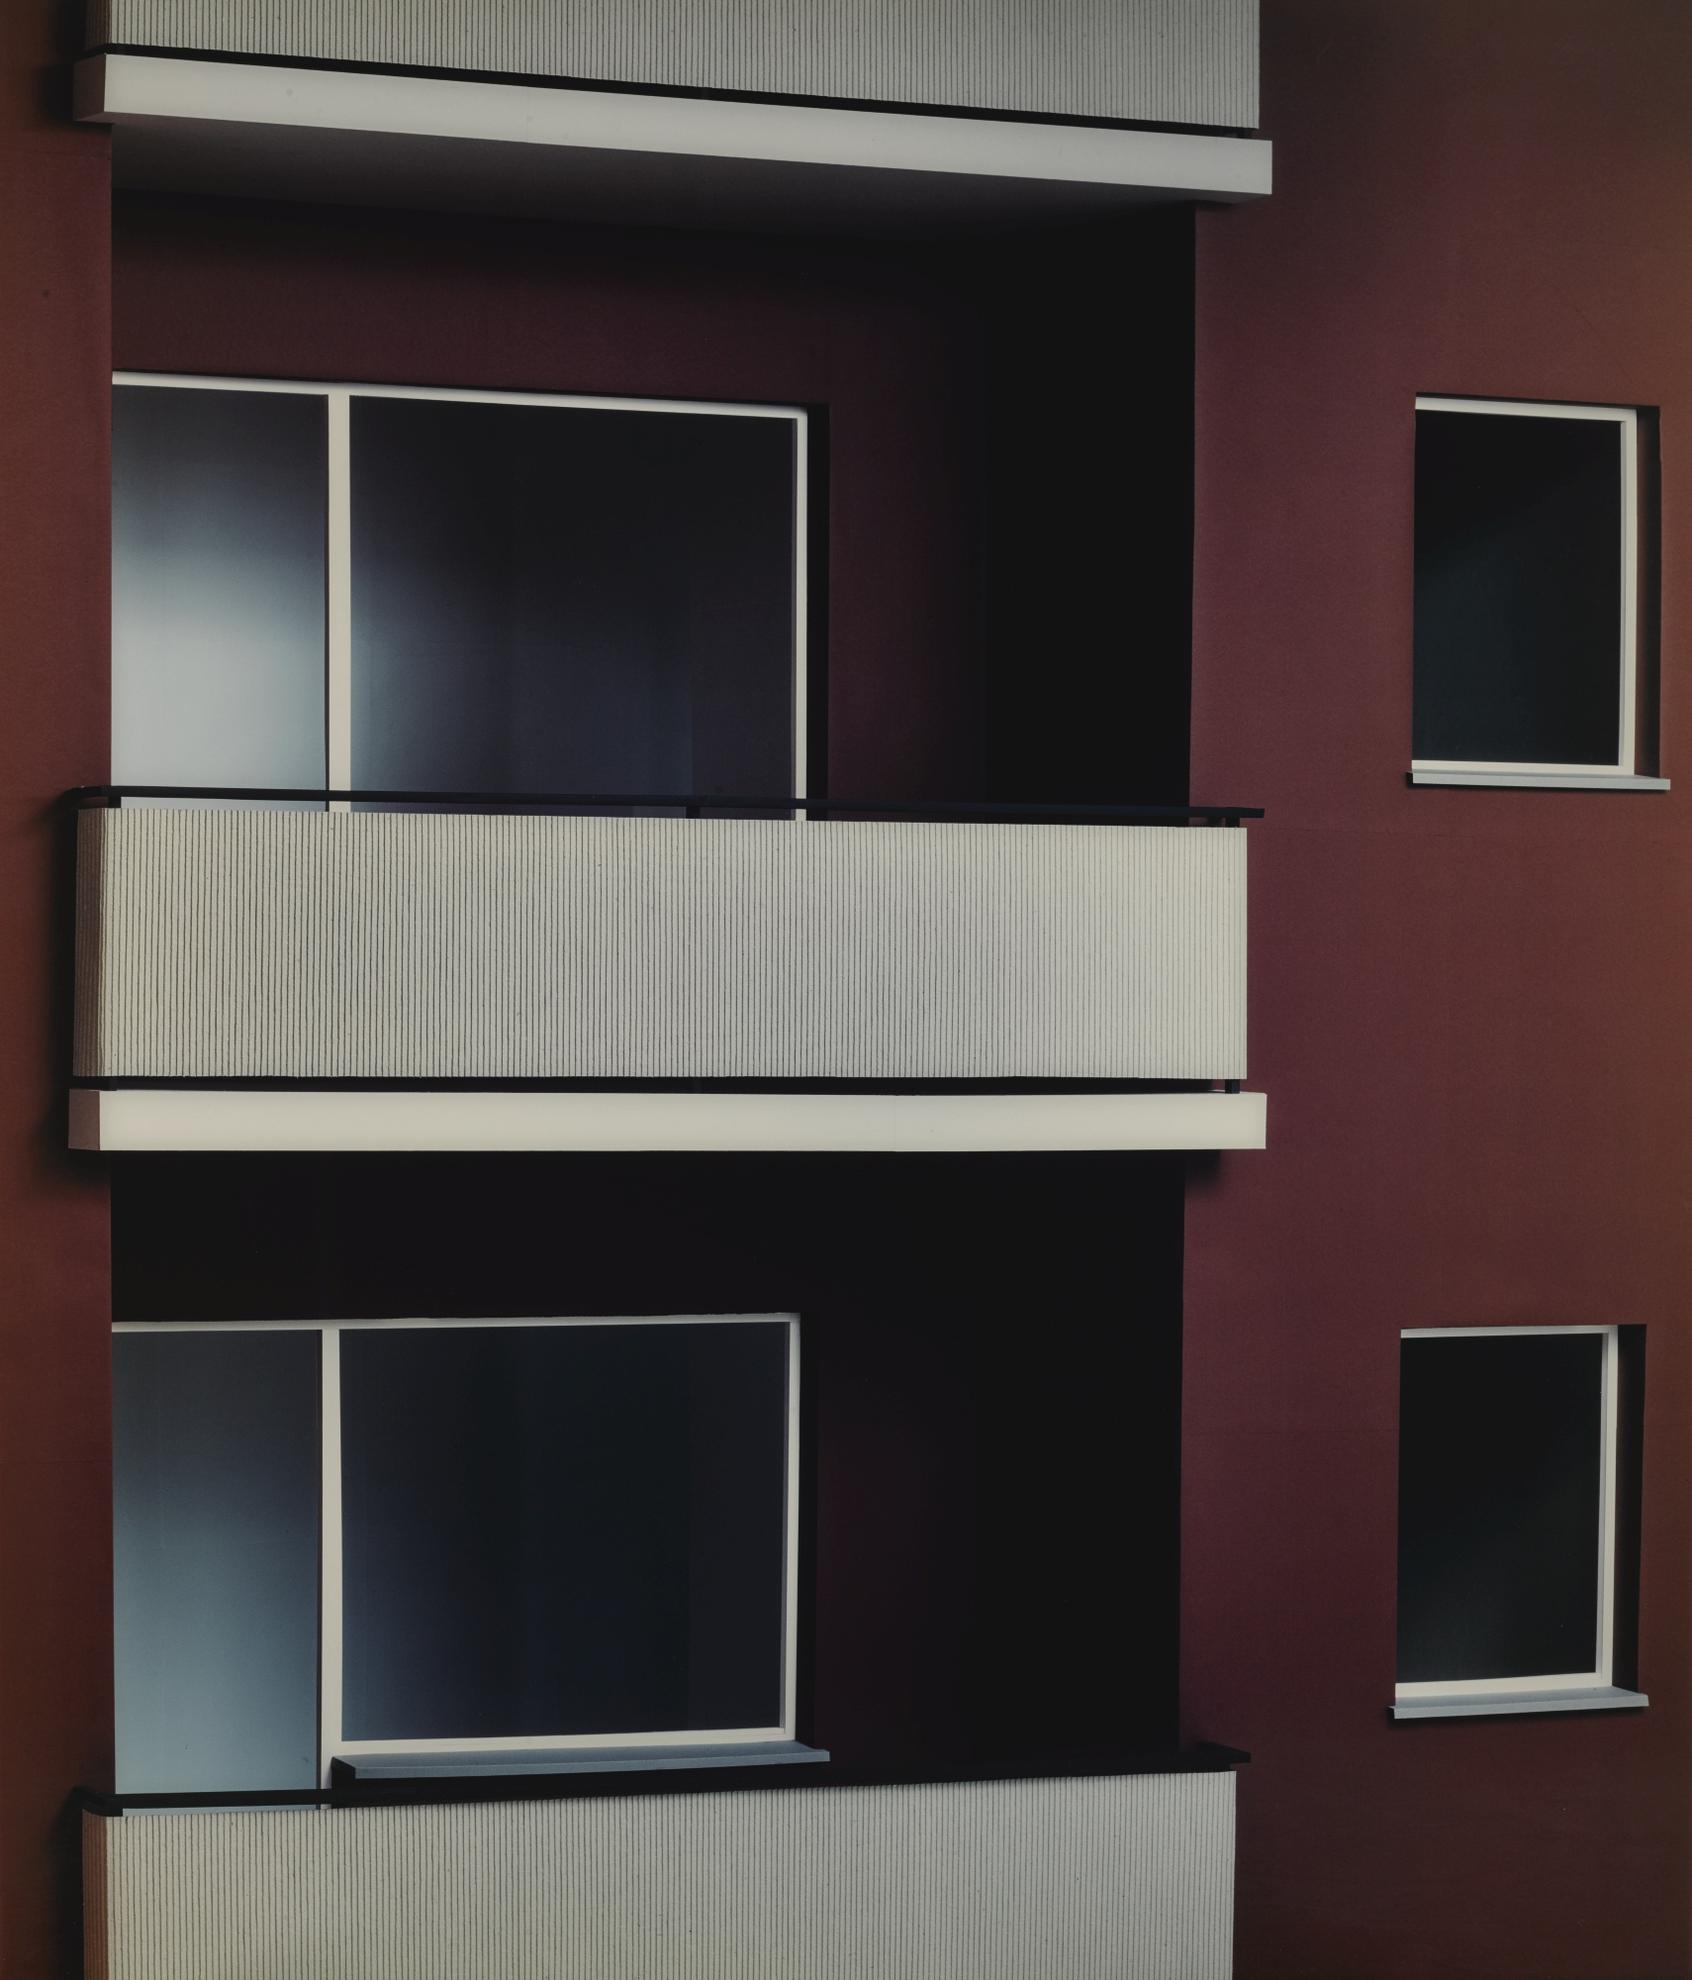 Thomas Demand-Balconies-1997